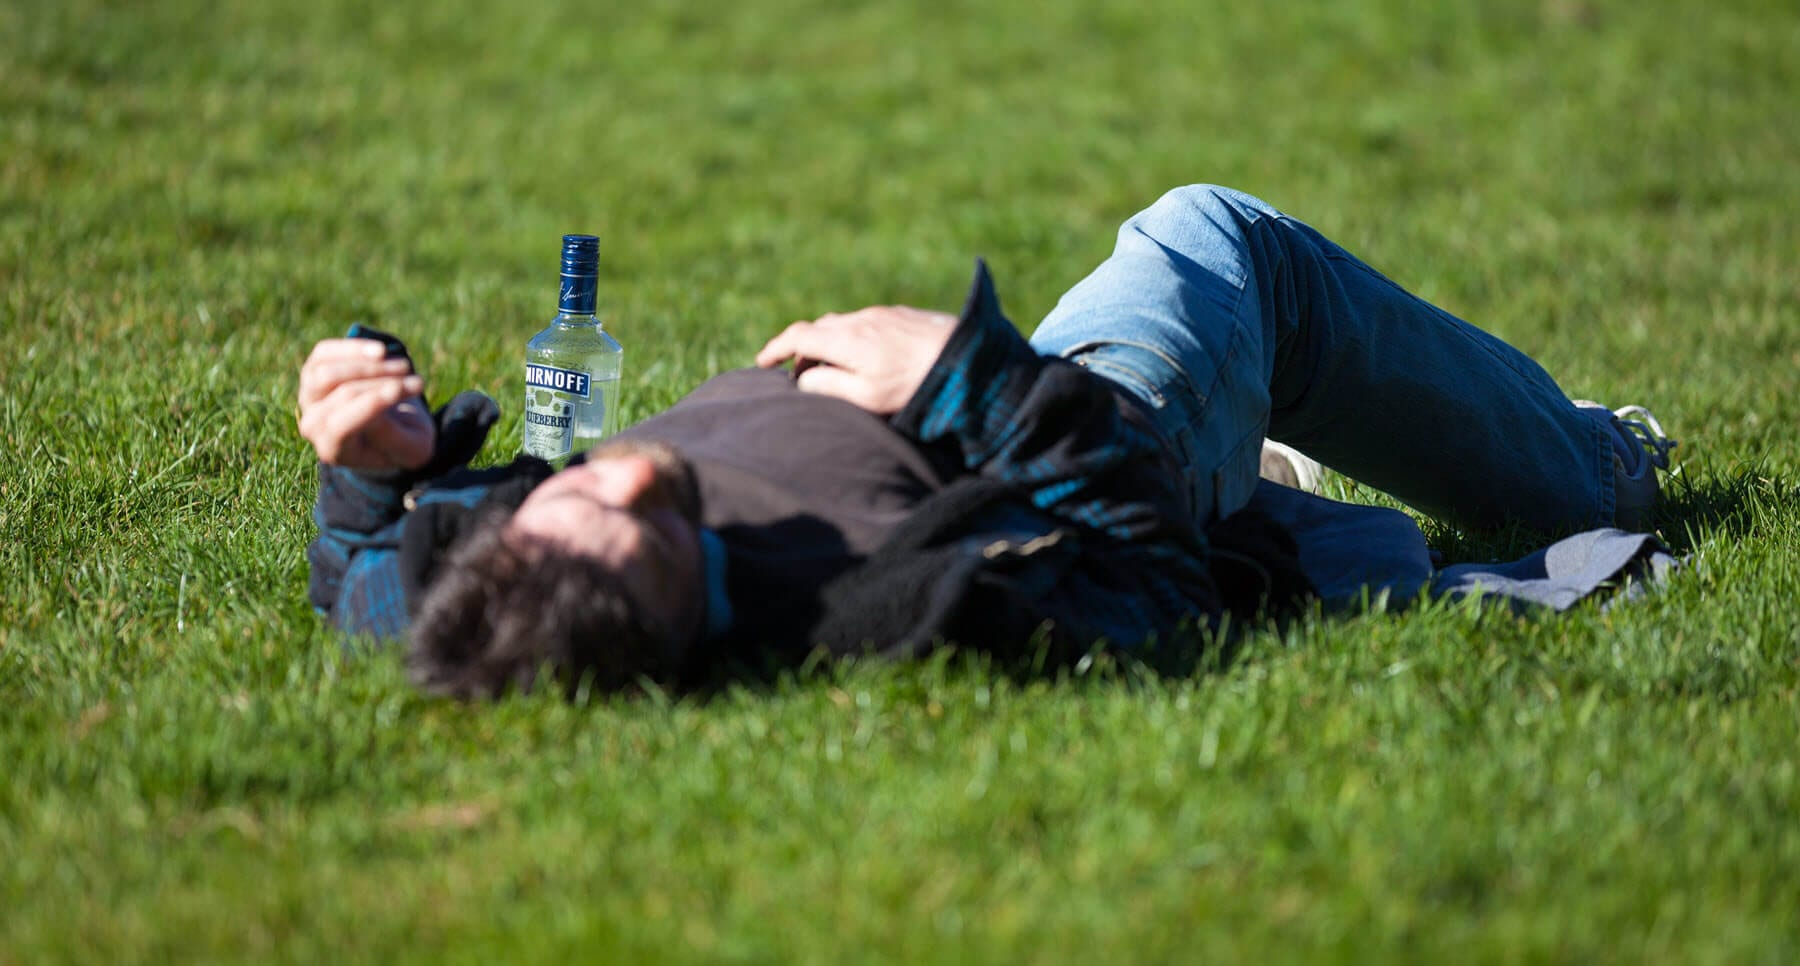 Guy laying on ground struggling with a relapse in his addiction